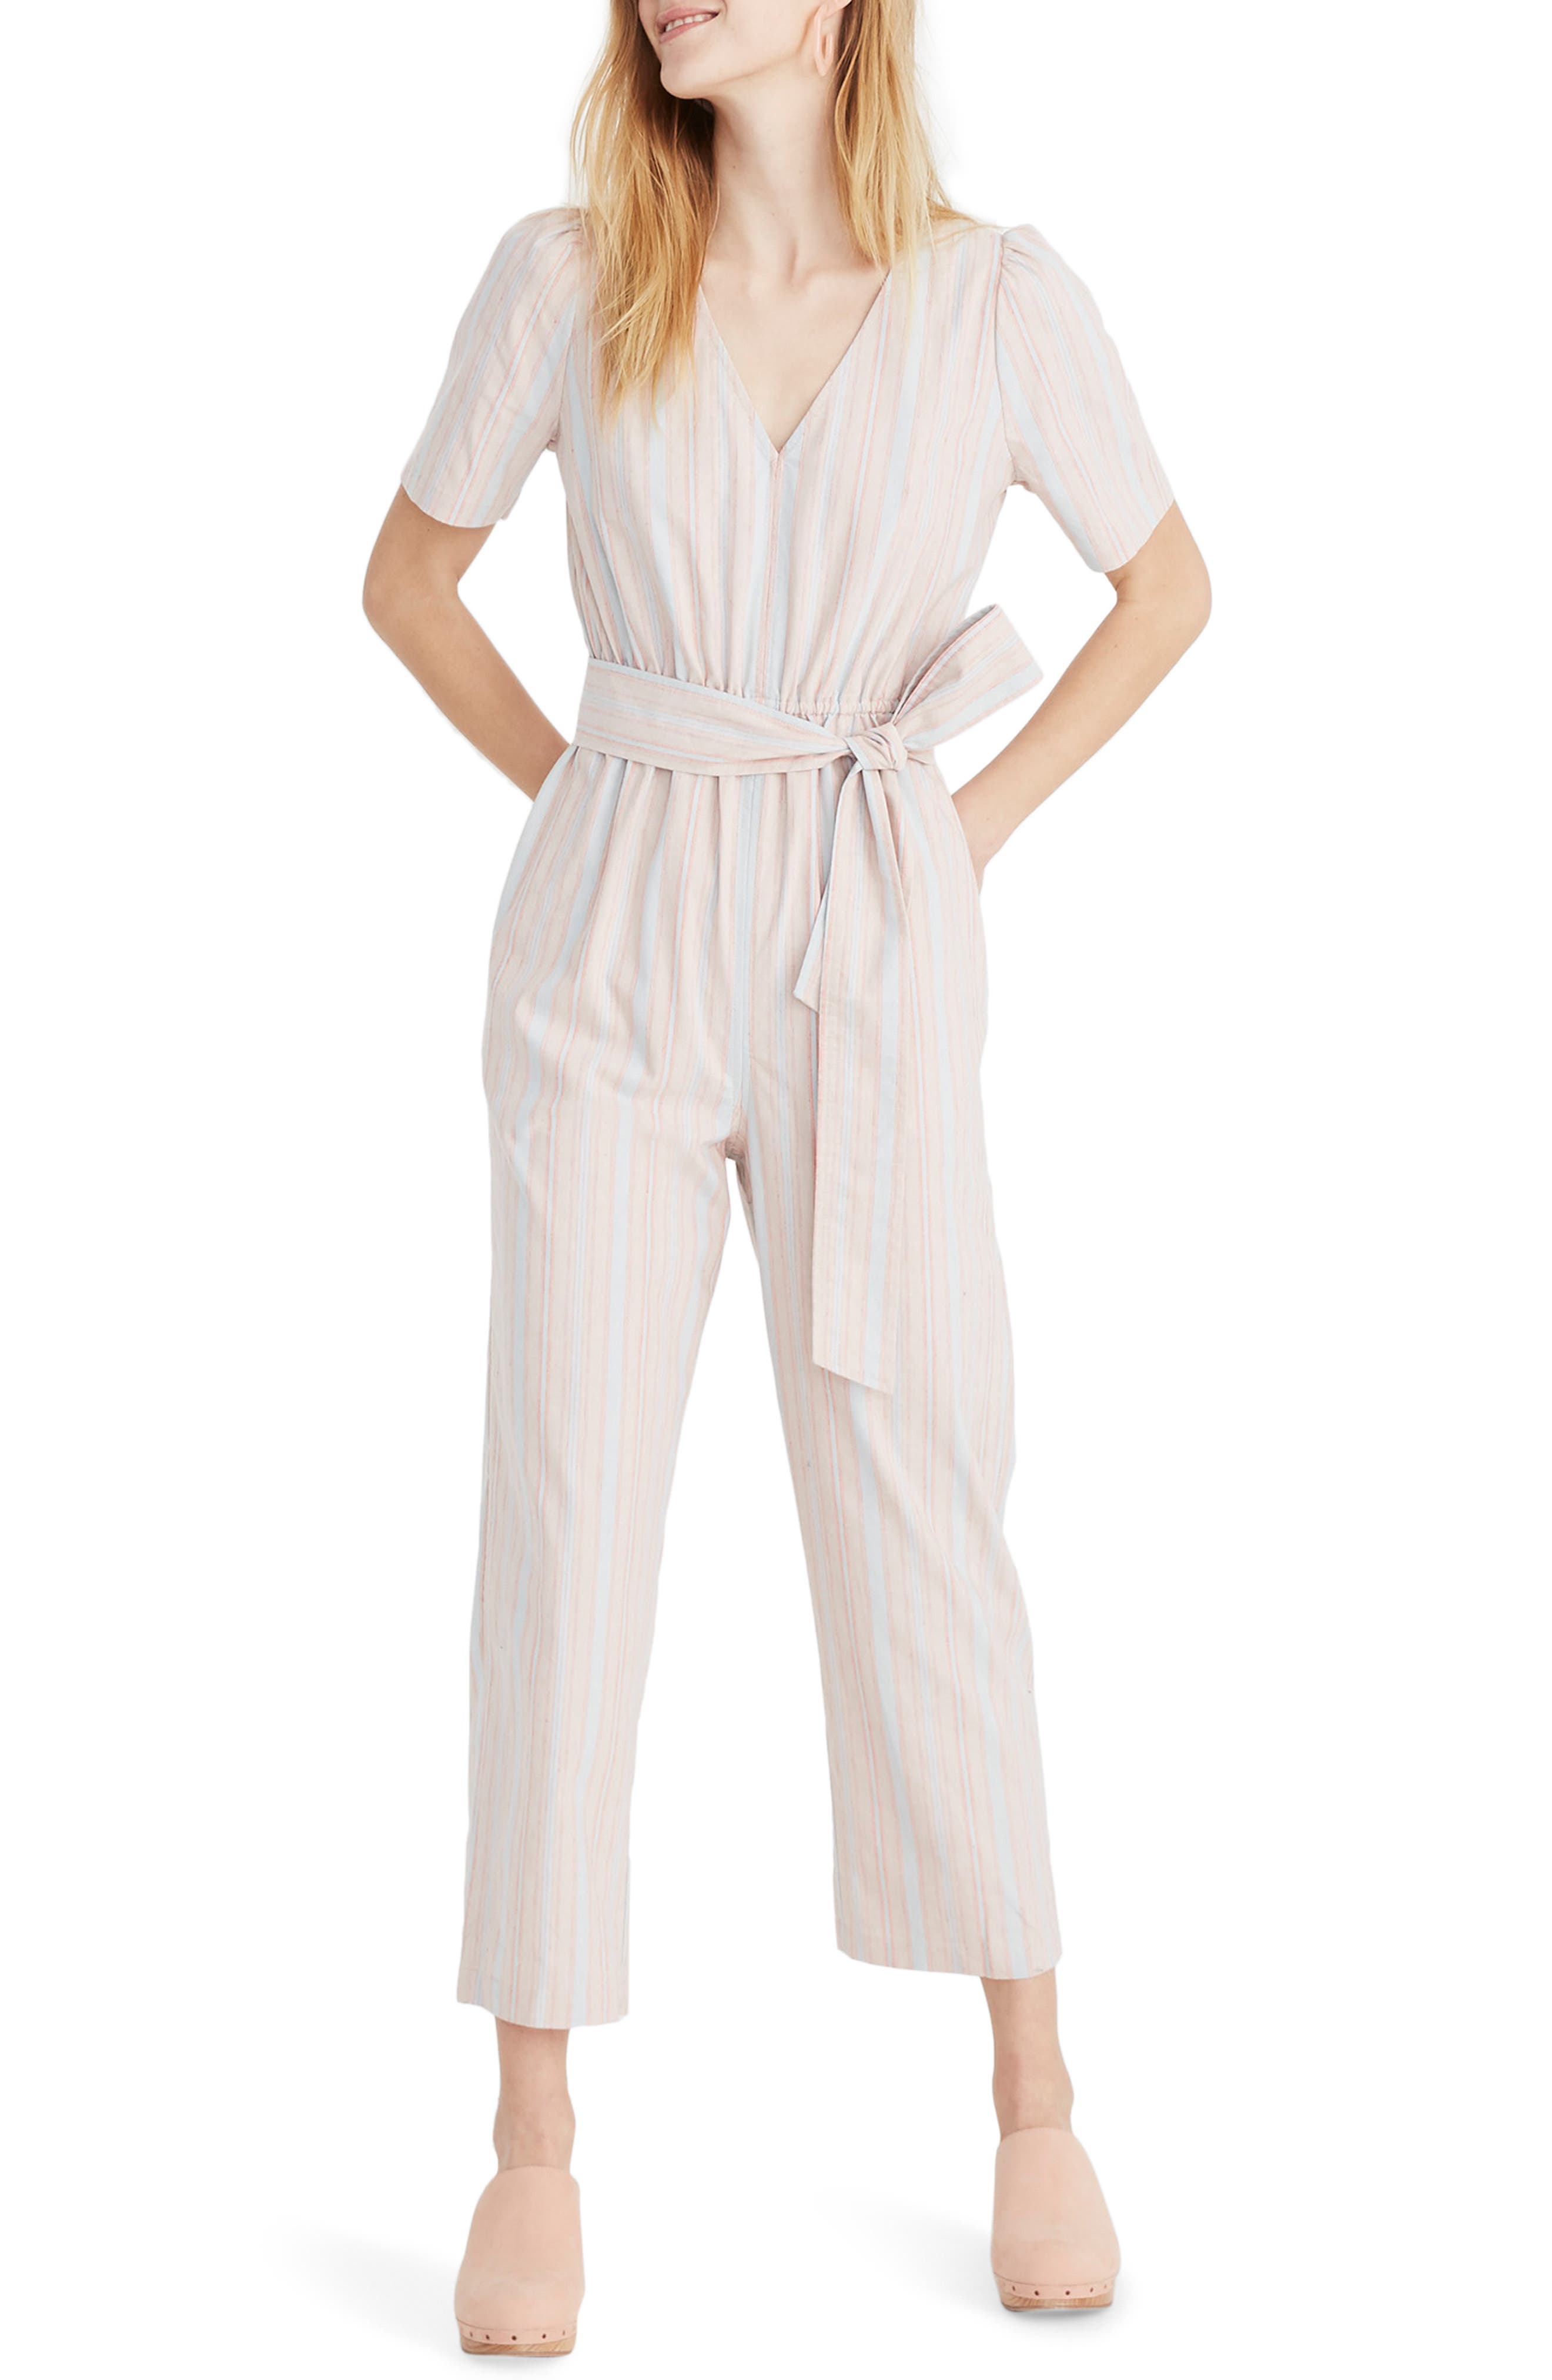 MADEWELL, Puff Sleeve Tapered Jumpsuit, Main thumbnail 1, color, 400